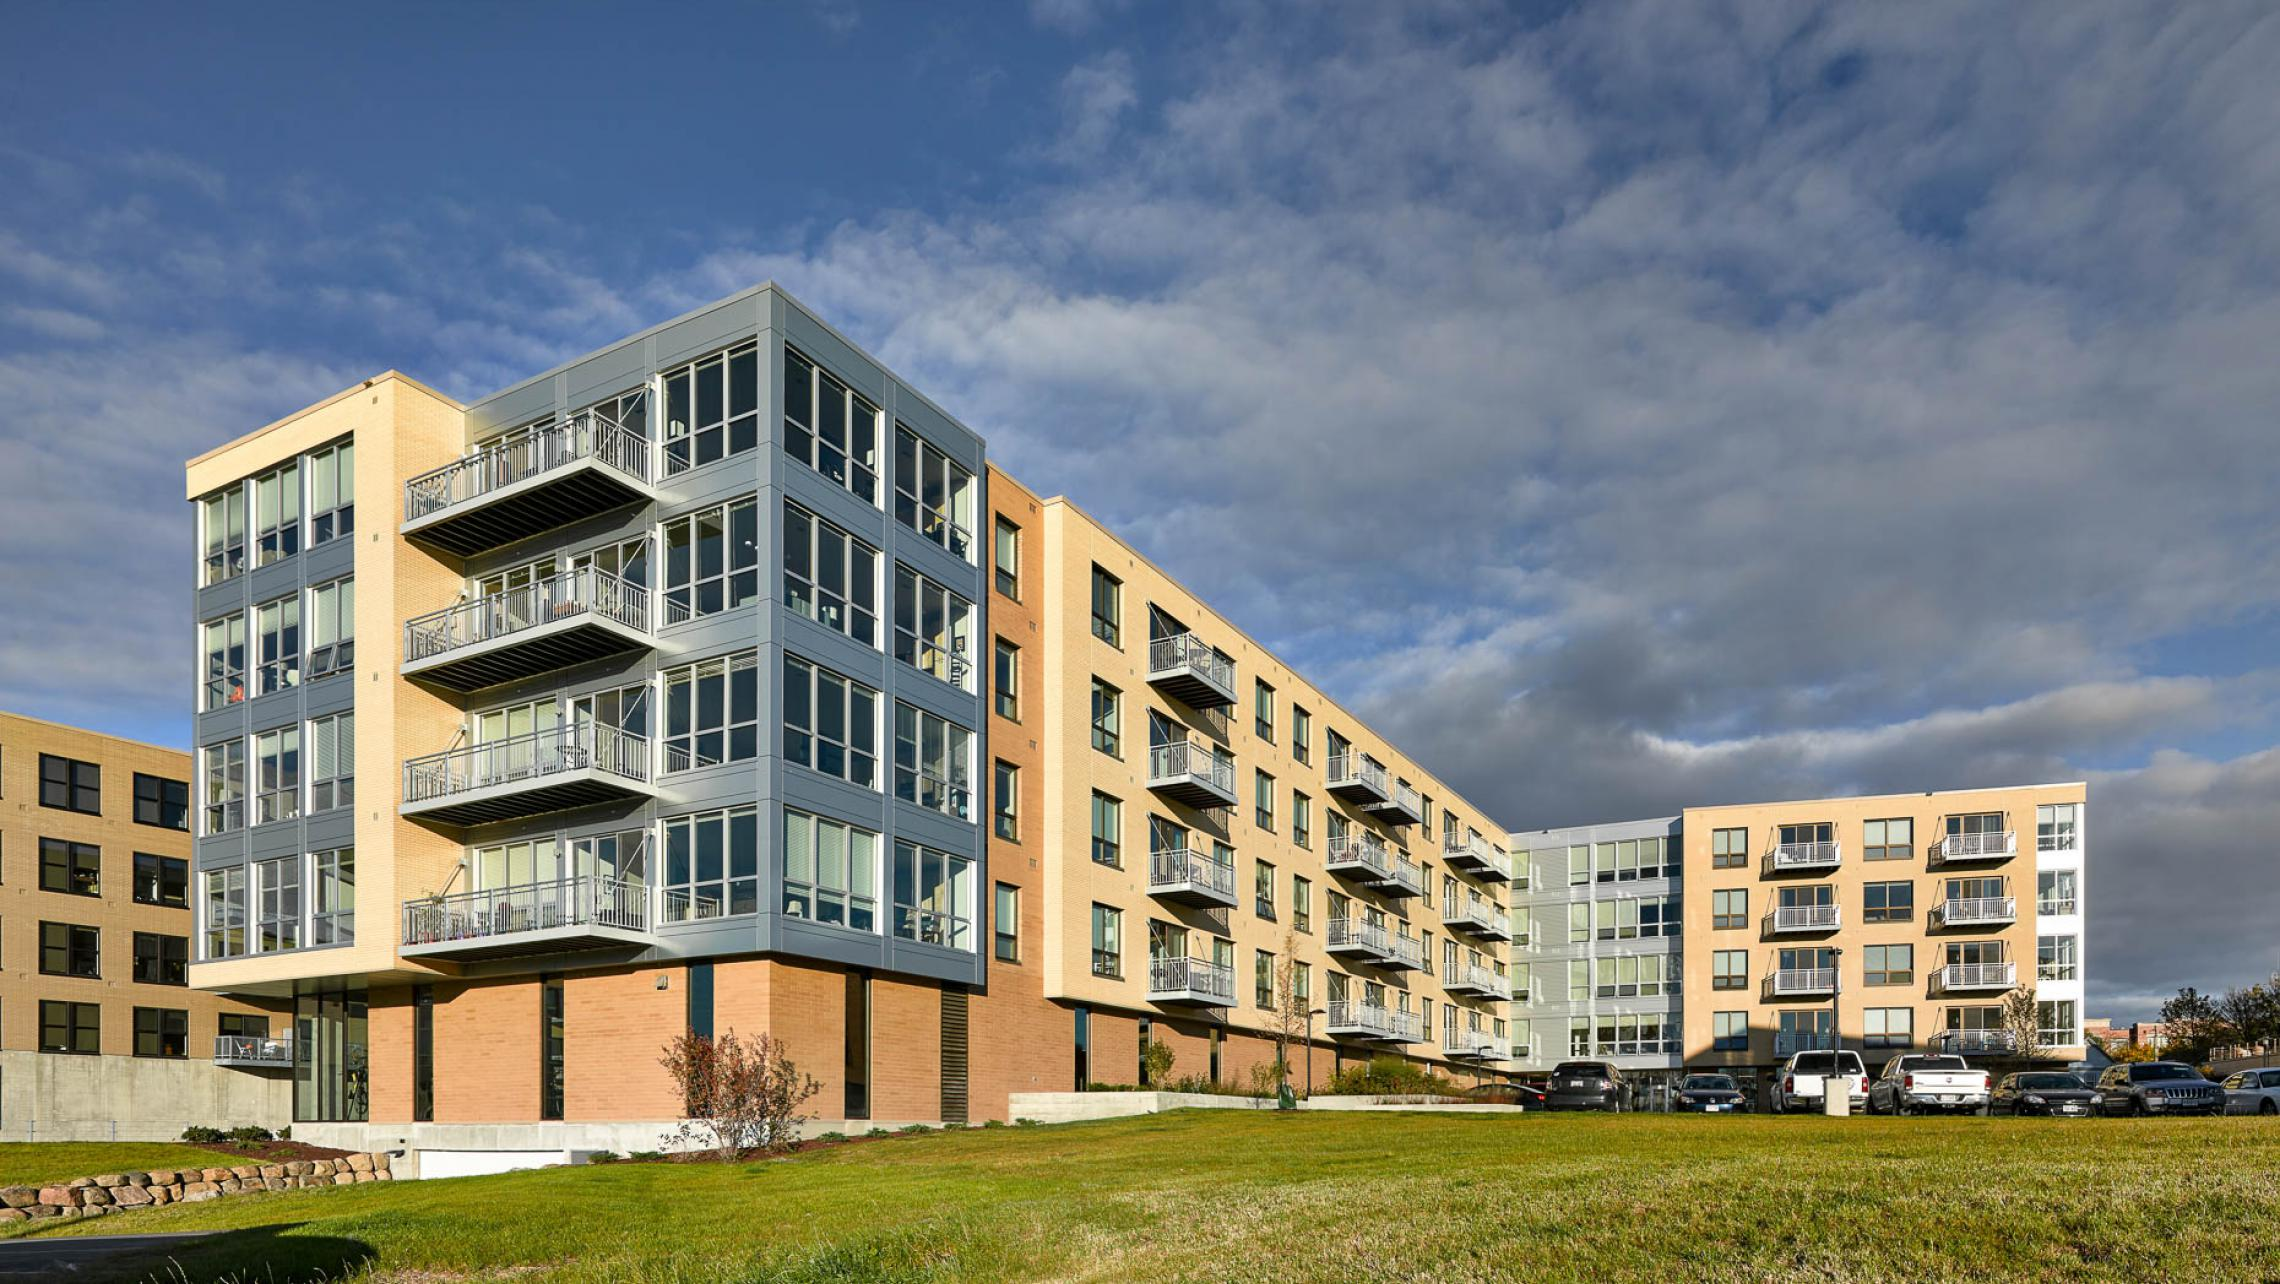 ULI Nine Line Apartments - Exterior of Modern Building